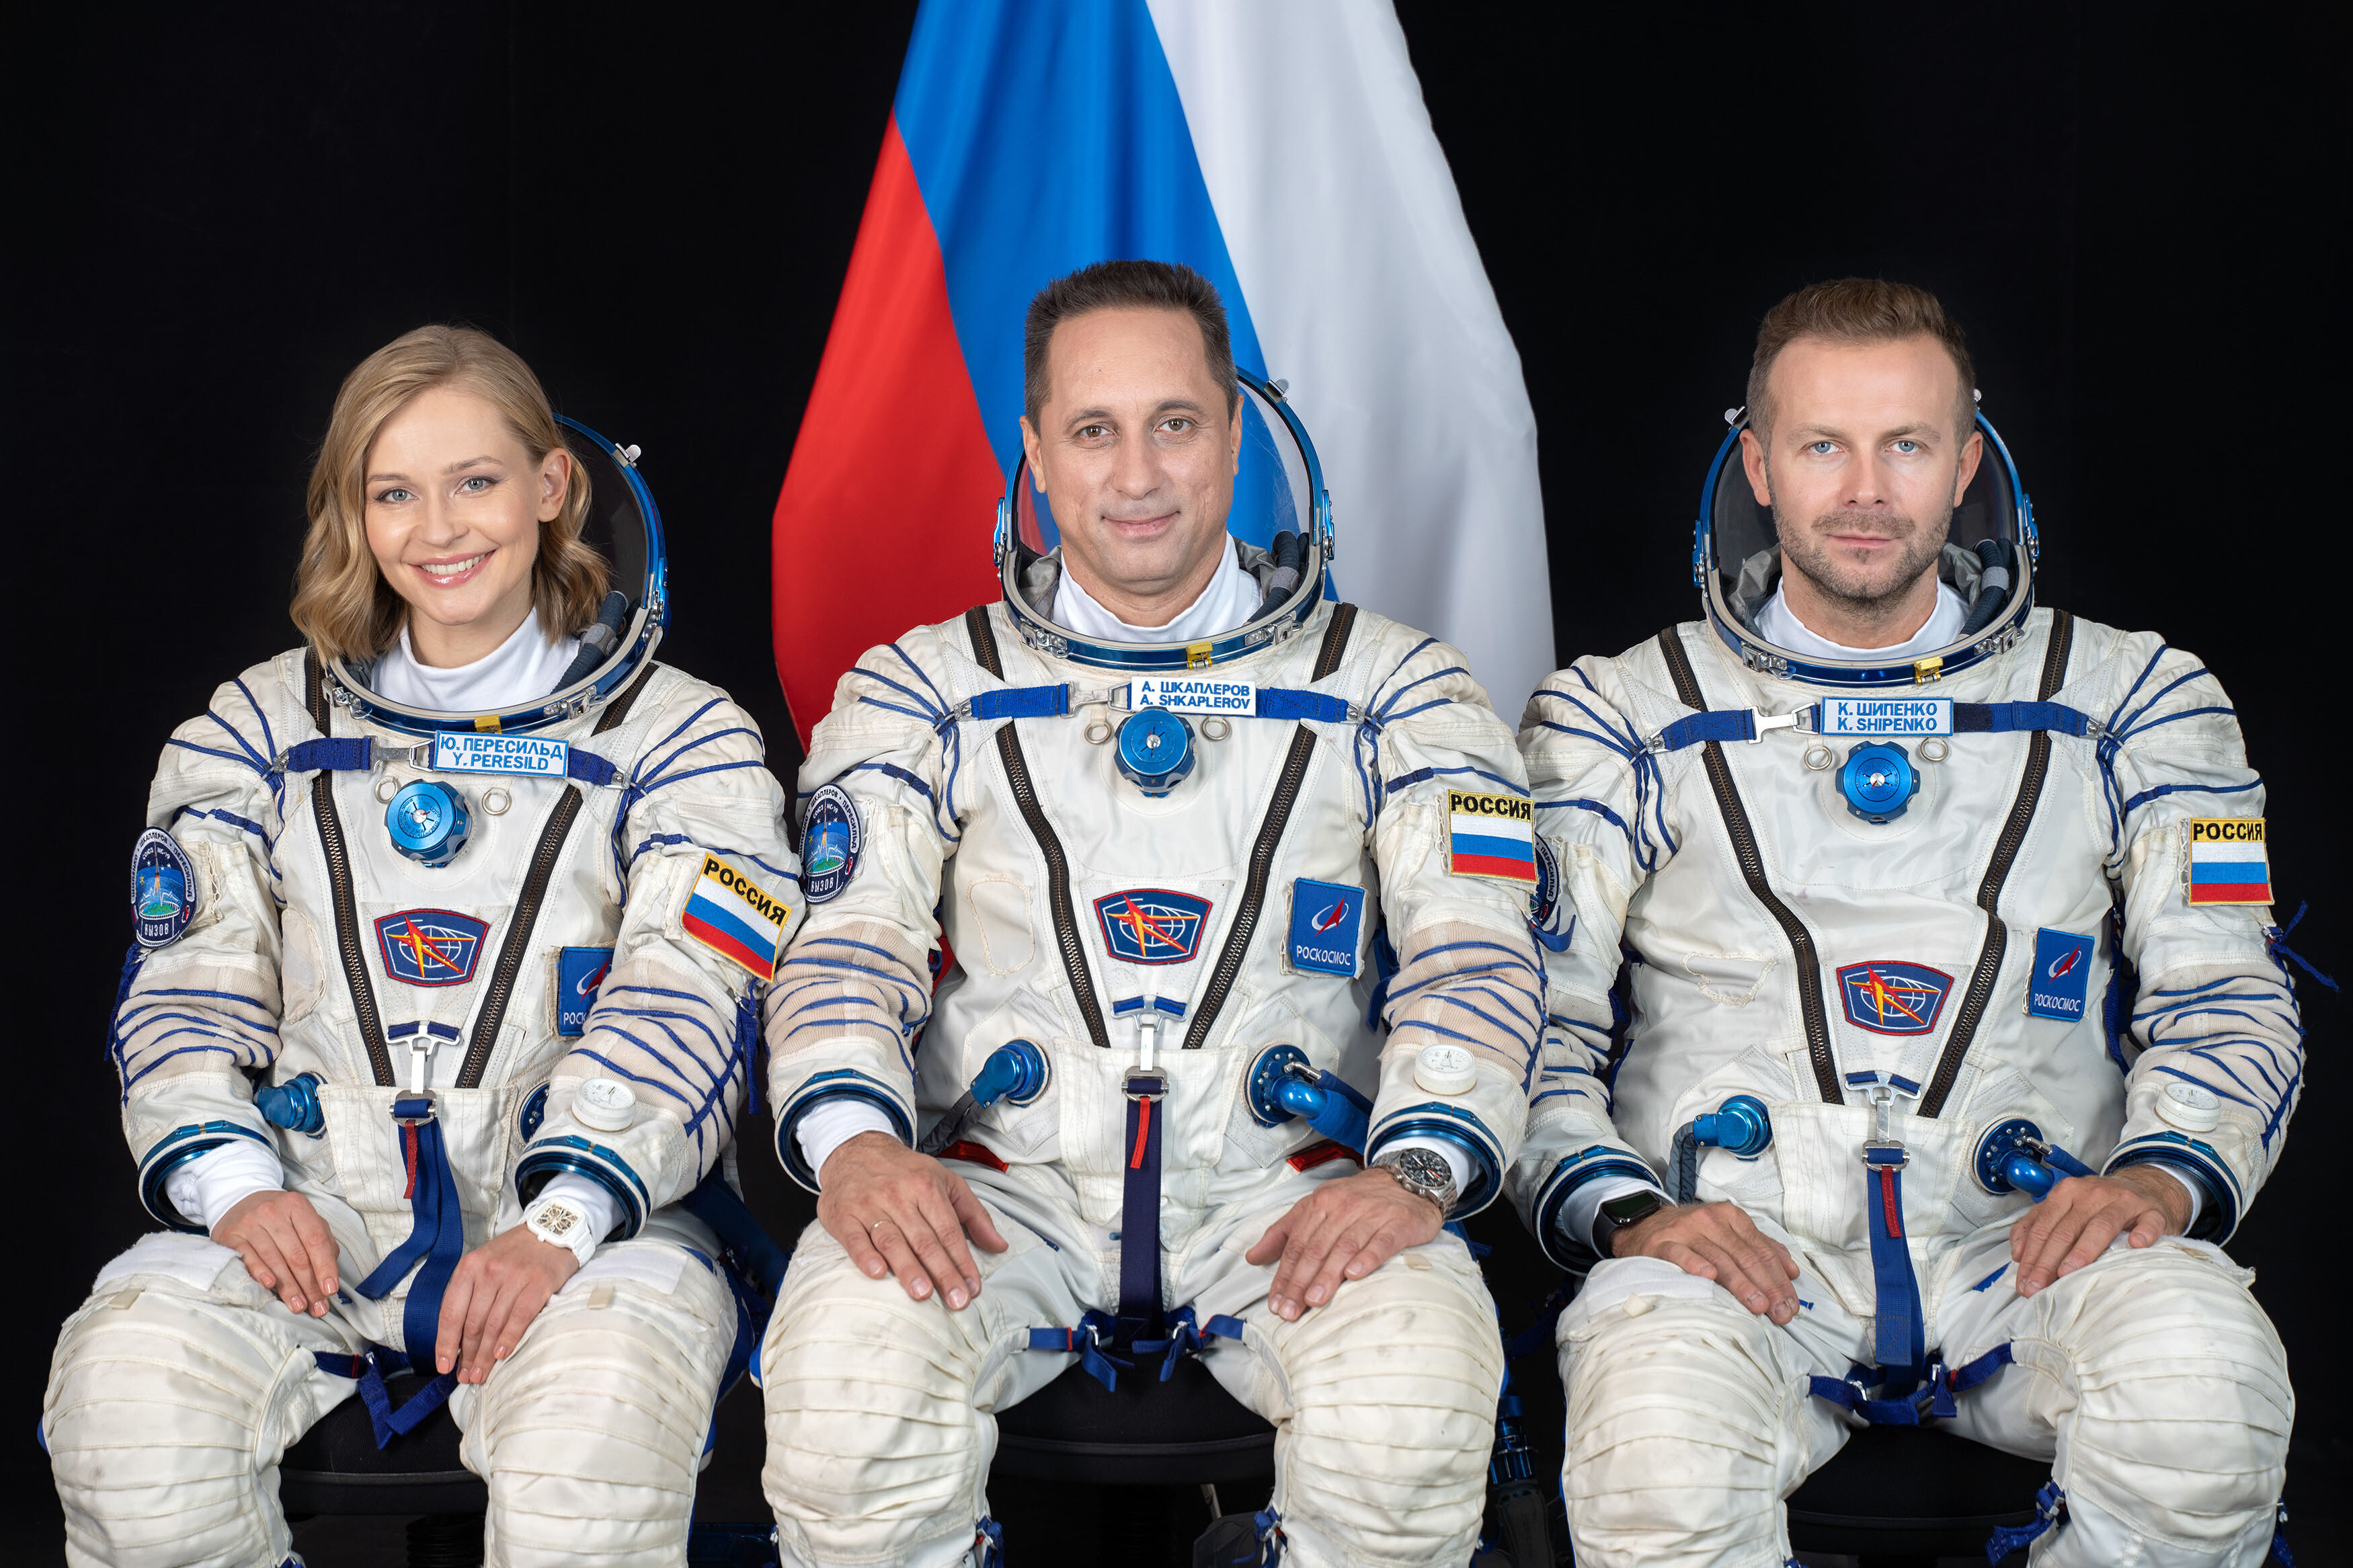 Russian actor and director will launch to film first movie made in space